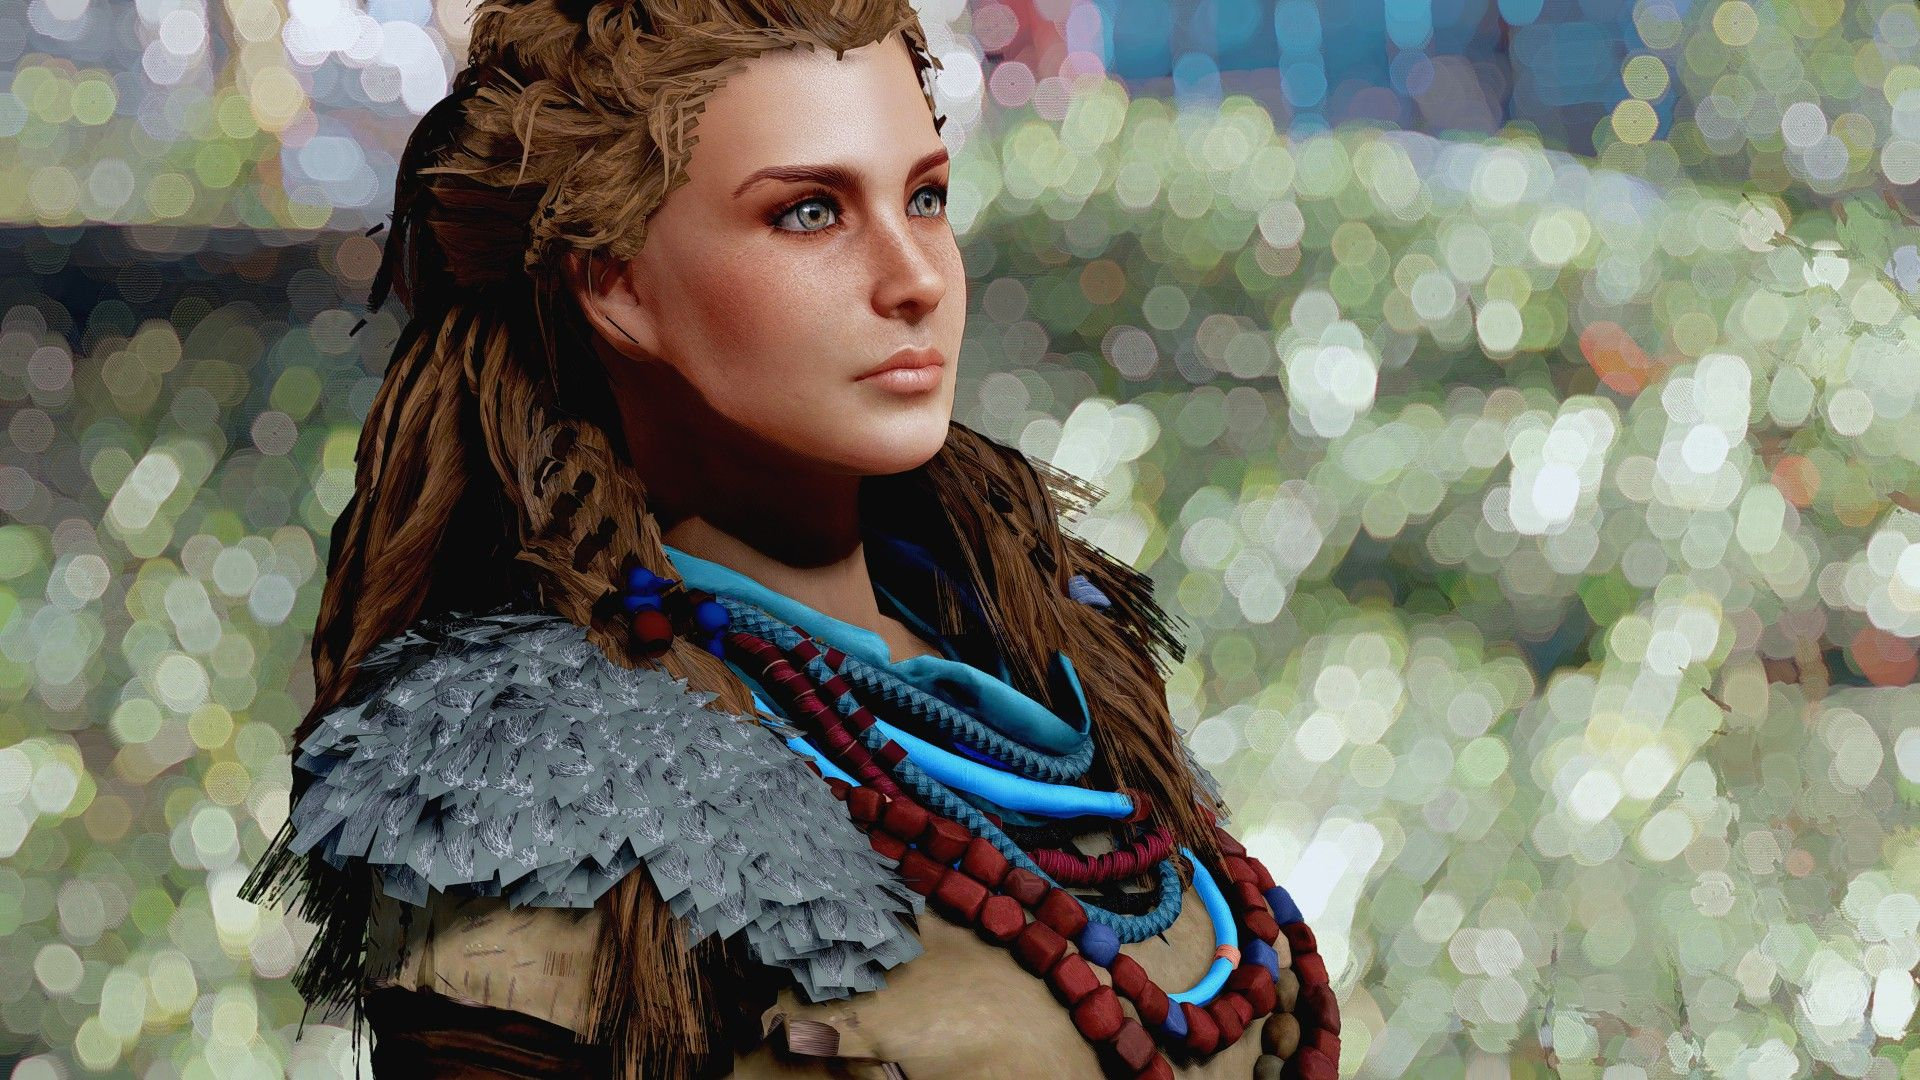 Horizon Zero Dawn comes to Fallout 4 with this authentic Aloy mod